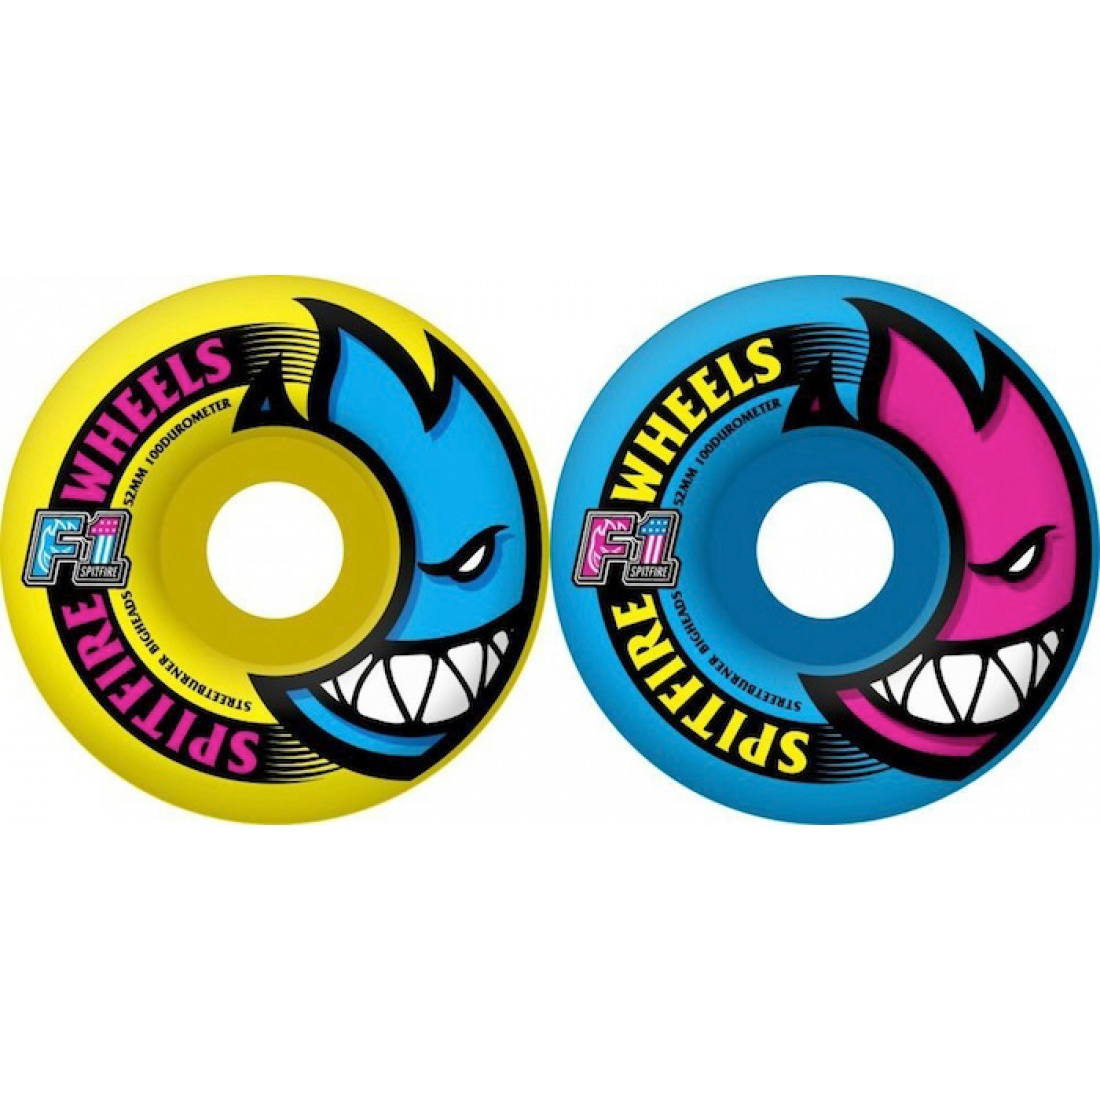 SF-F1SB Bighead New Wave Msh 52MM Wheels (Set of 4)